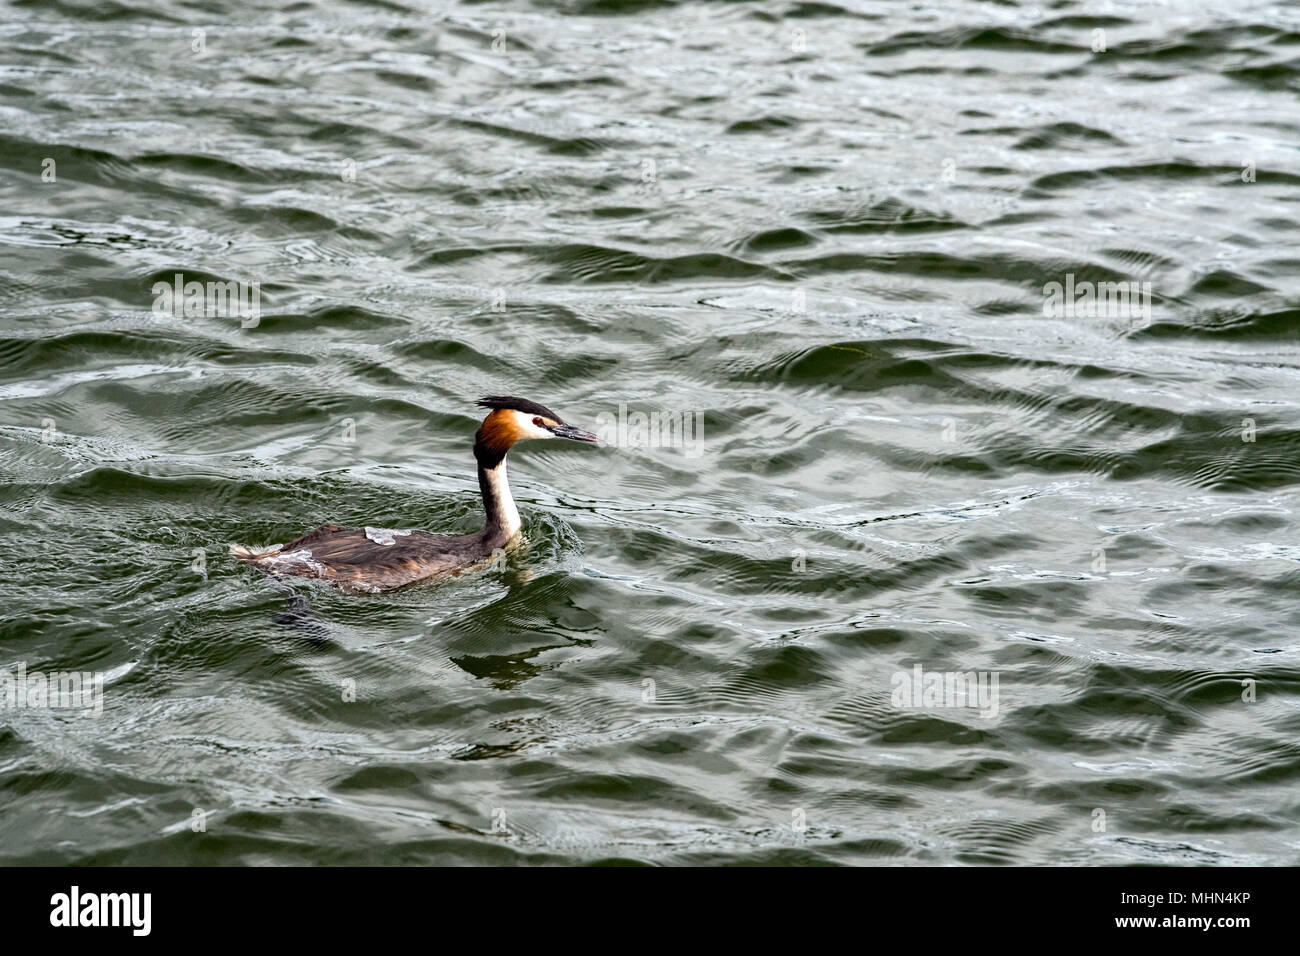 Grebe bird while swimminh in thames river in England - Stock Image